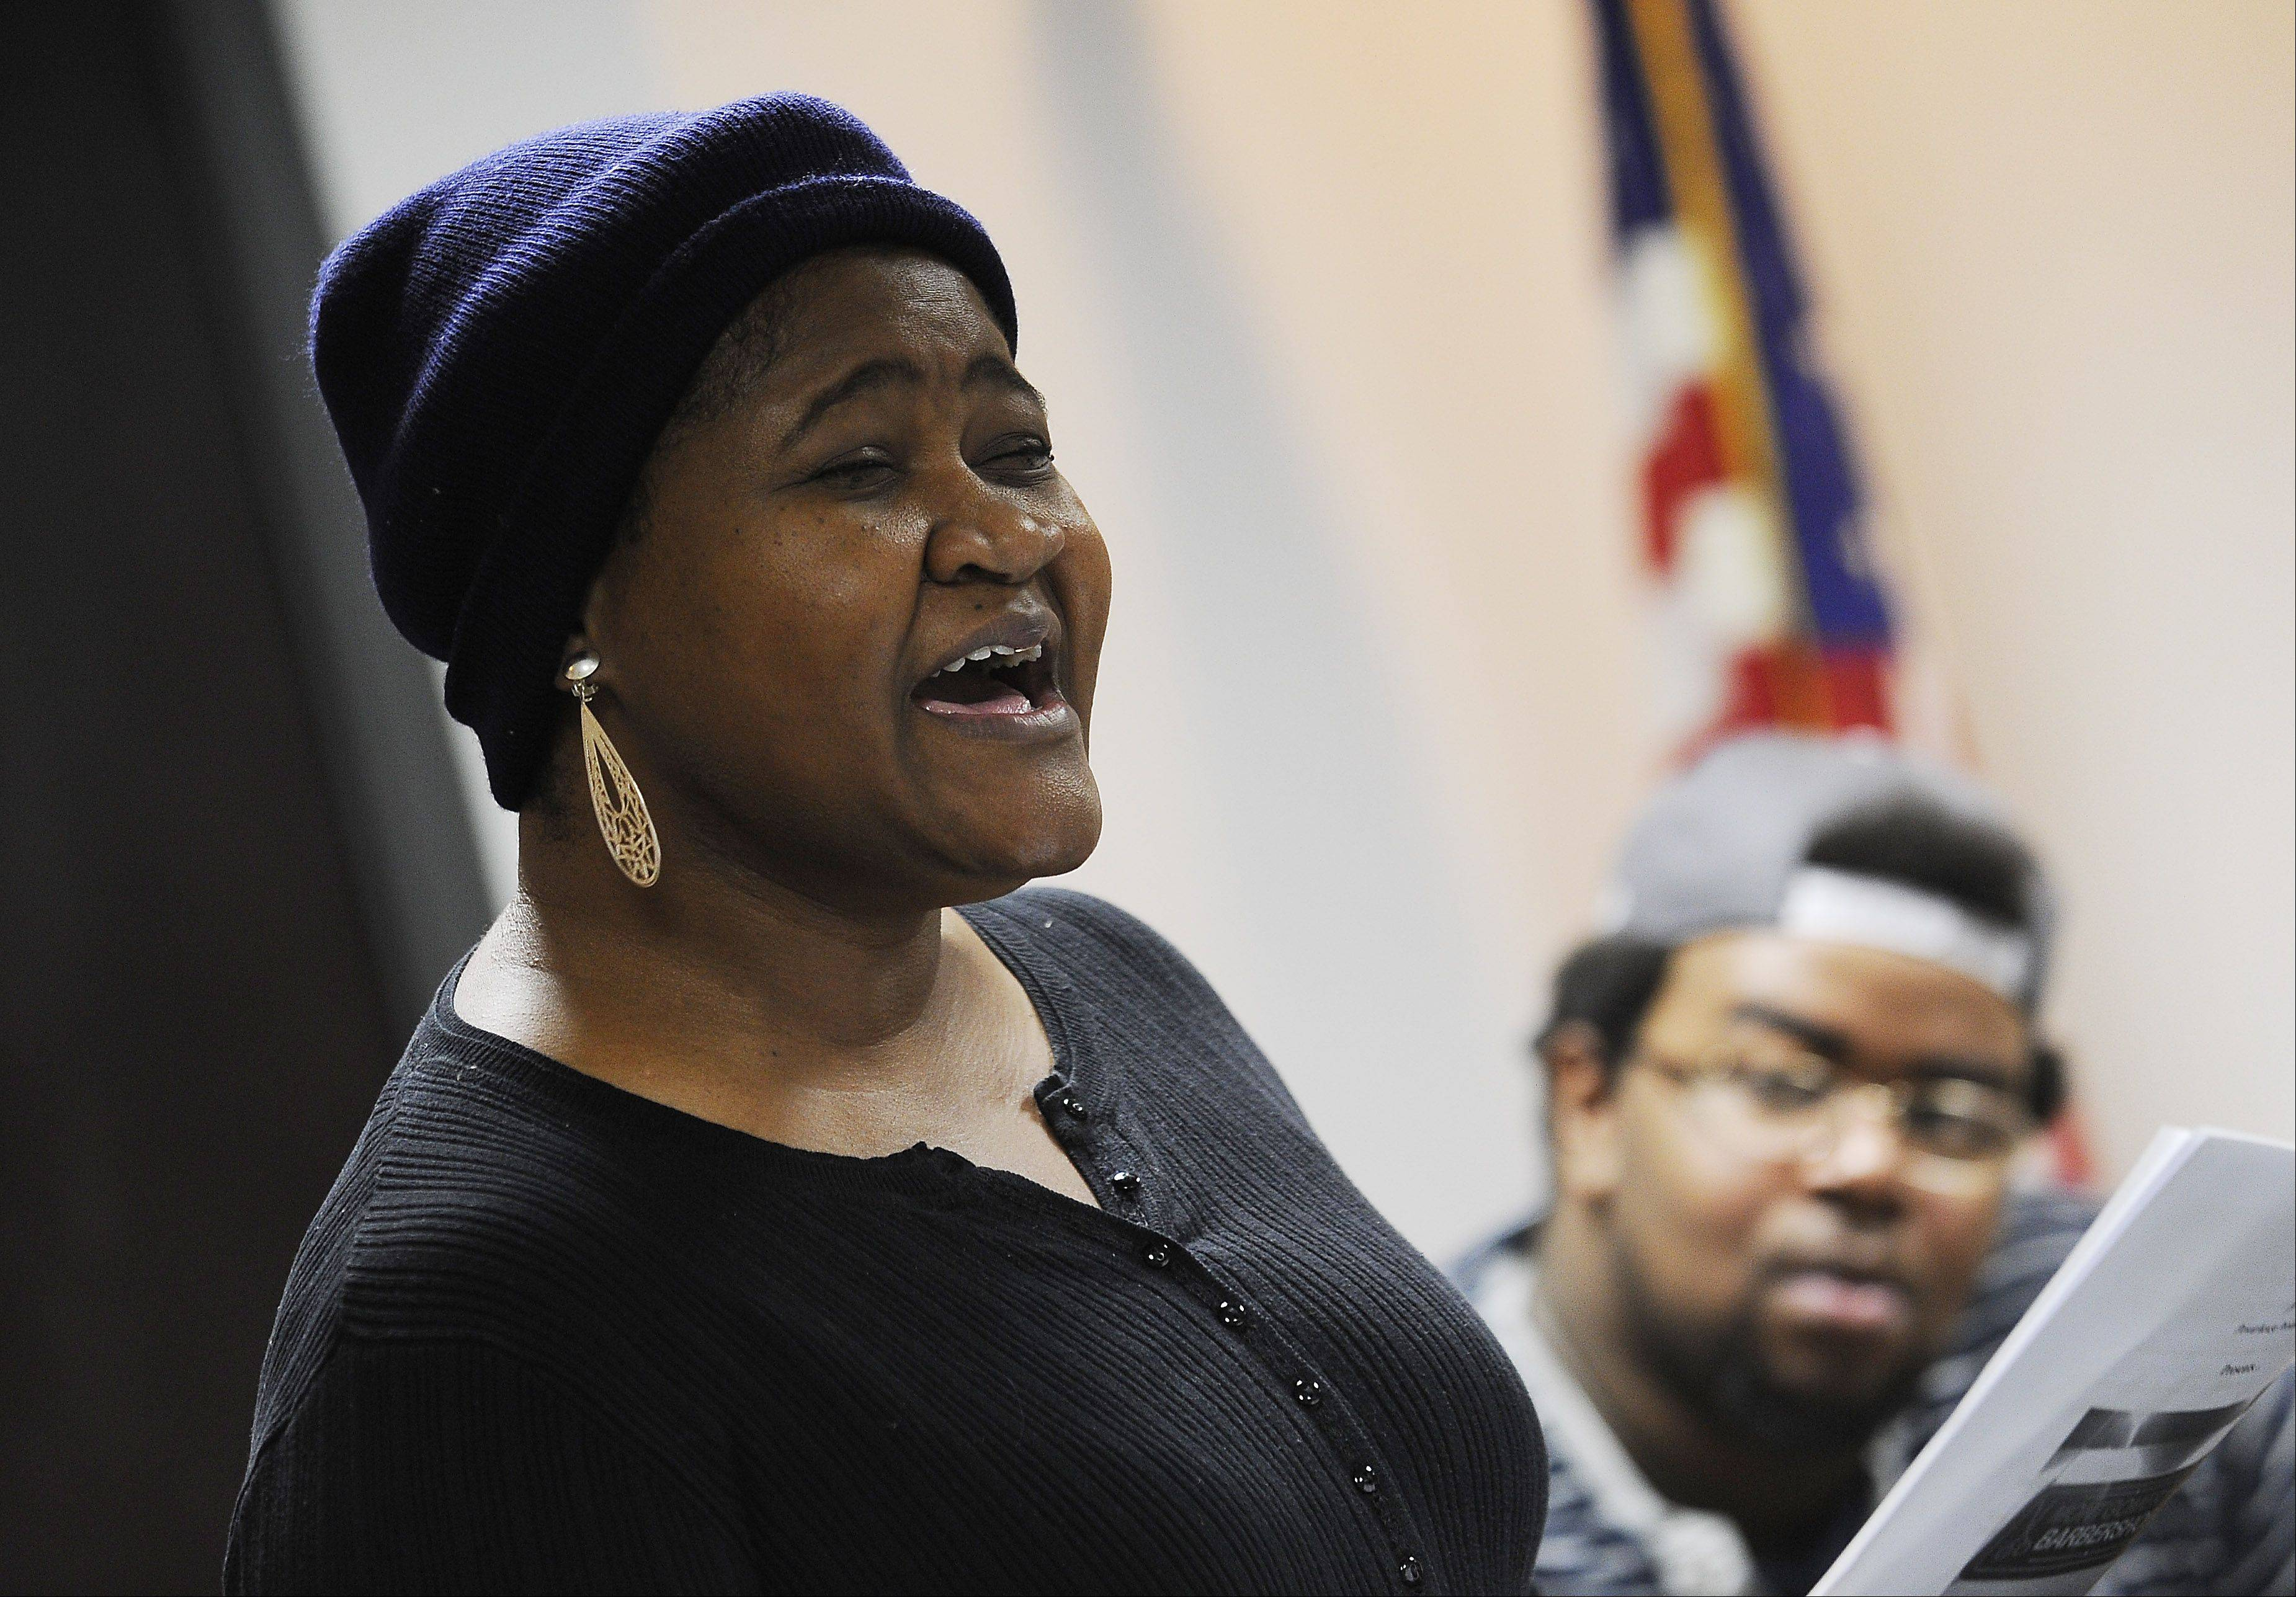 Carmelita Edmonds of Hoffman Estates sings her solo song during a rehearsal for last year's Black History Month performance. This year's show will be at 7 p.m. on Saturday, Feb. 23, at the Schaumburg Prairie Center for the Arts.